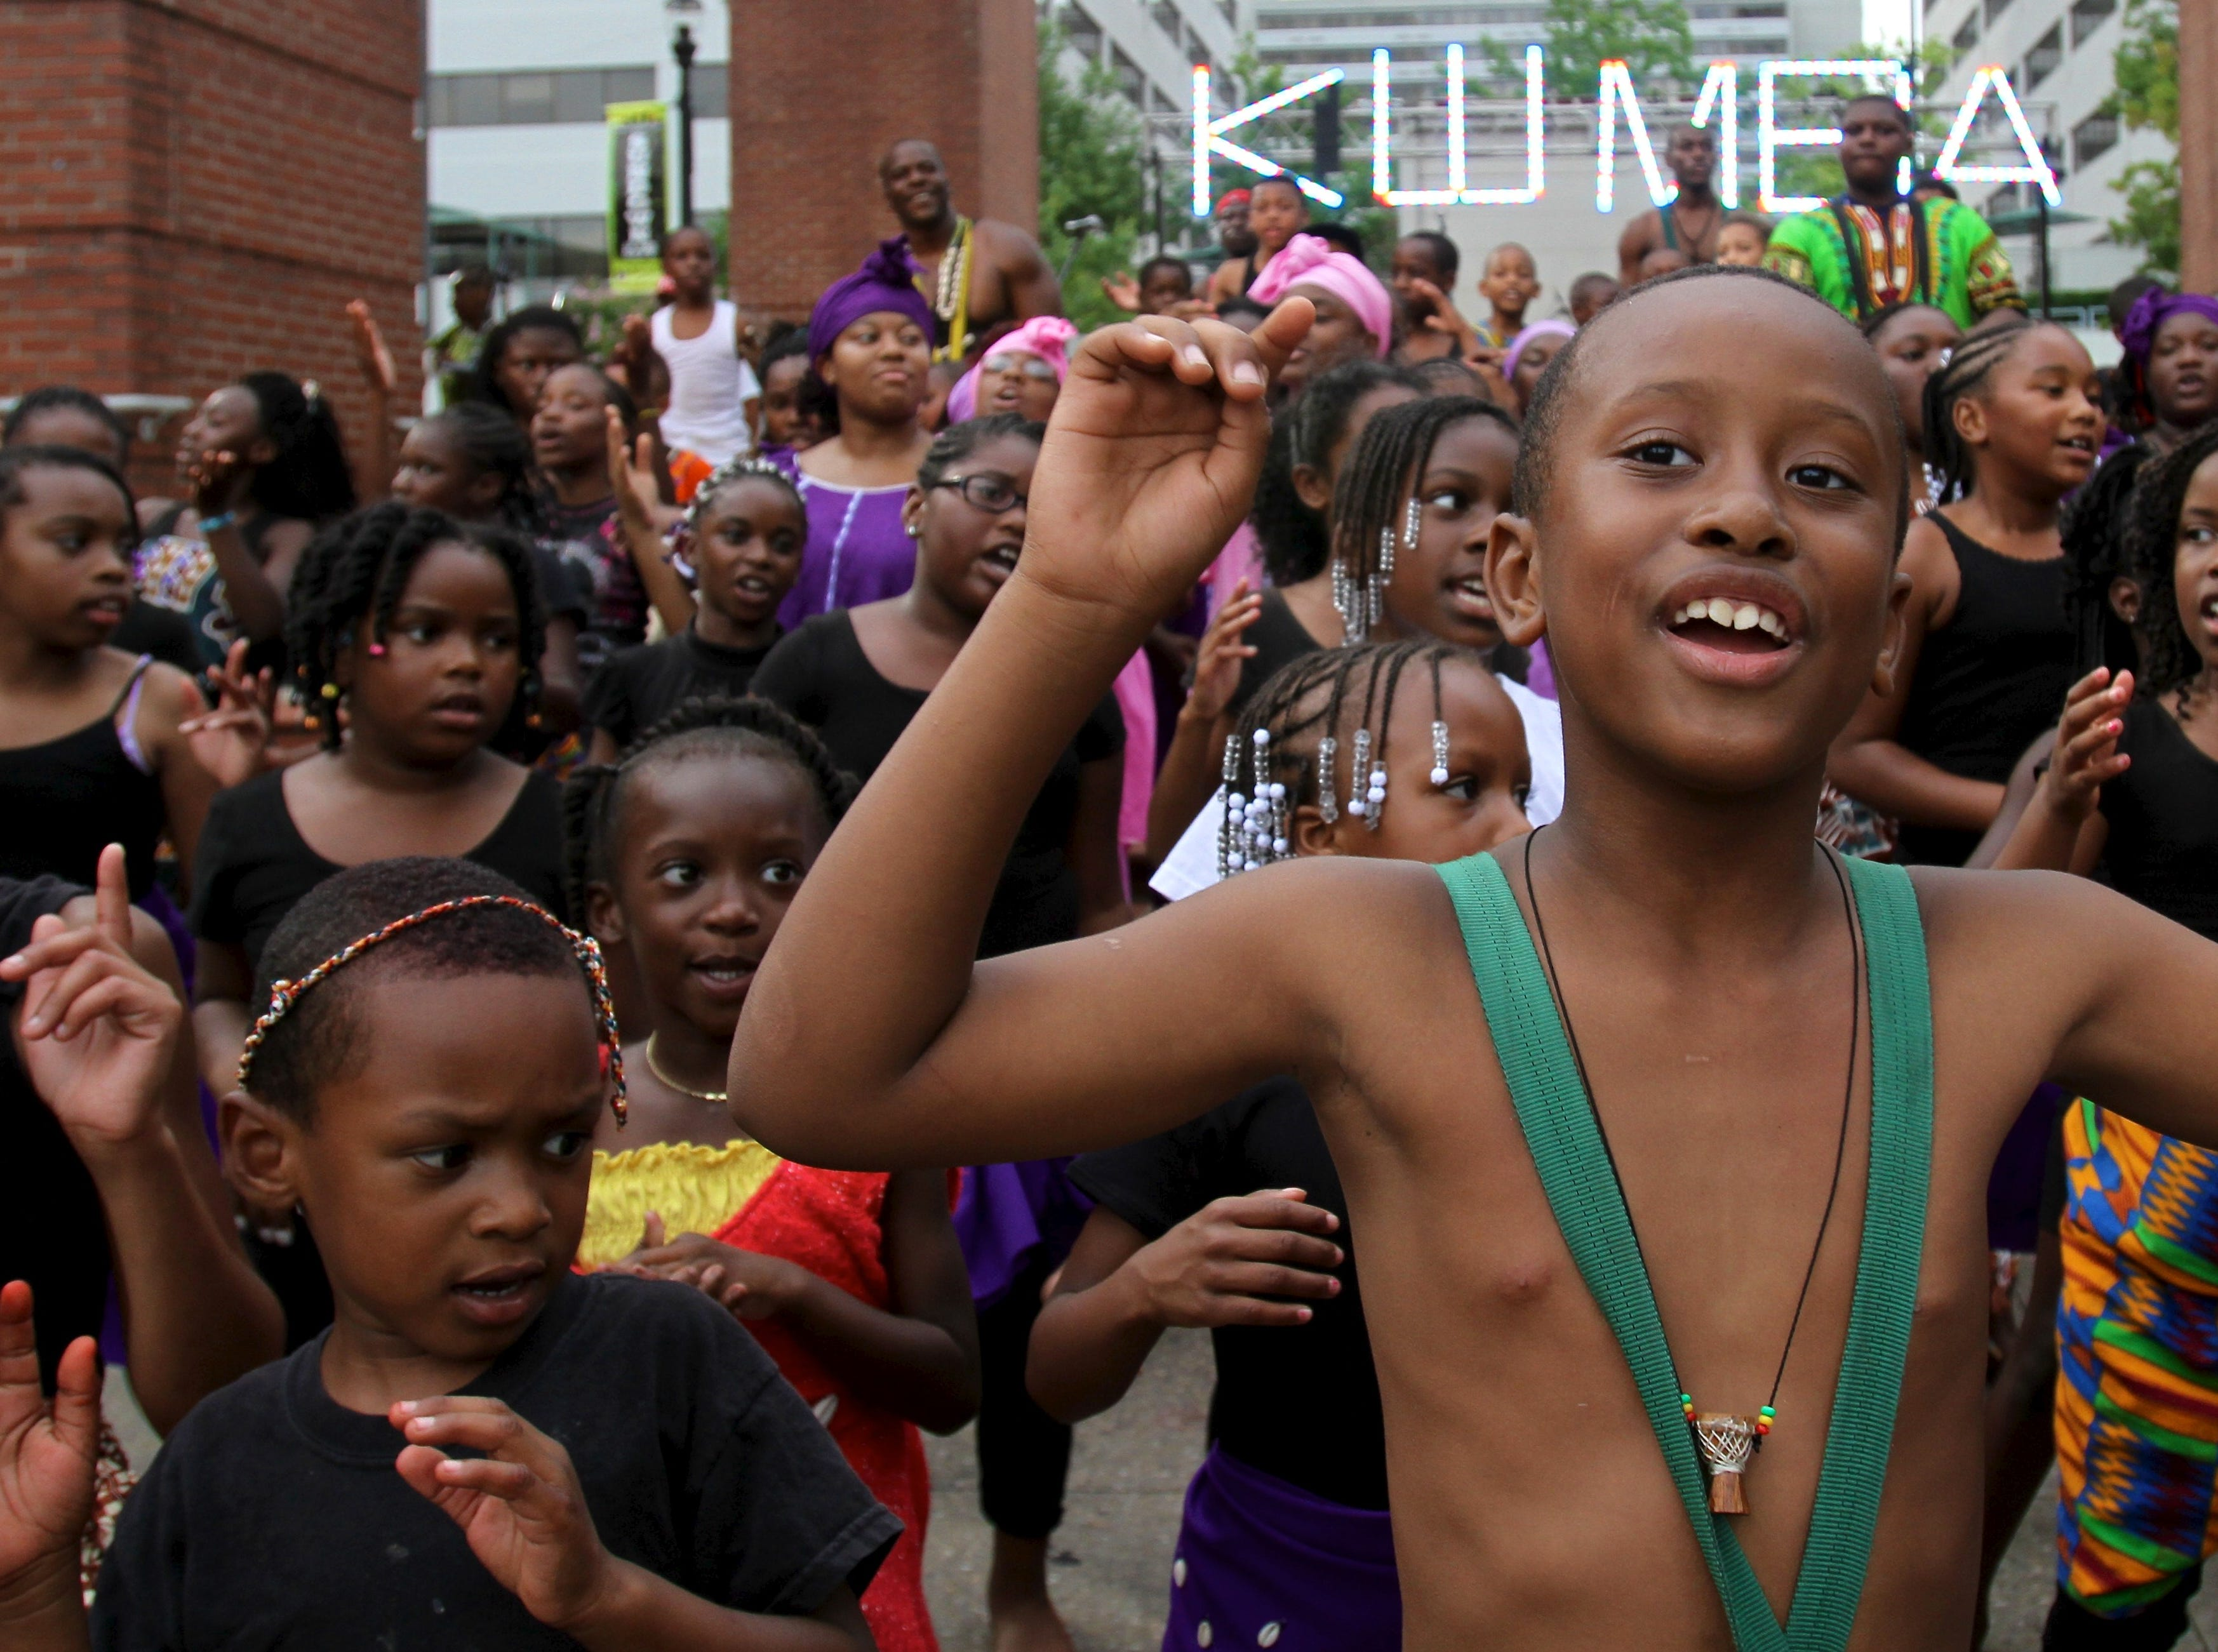 Children including Khalid Ajanka, 8, center, perform on Market Square after the annual Kuumba Festival's Junkanu parade on Friday, June 24, 2011.